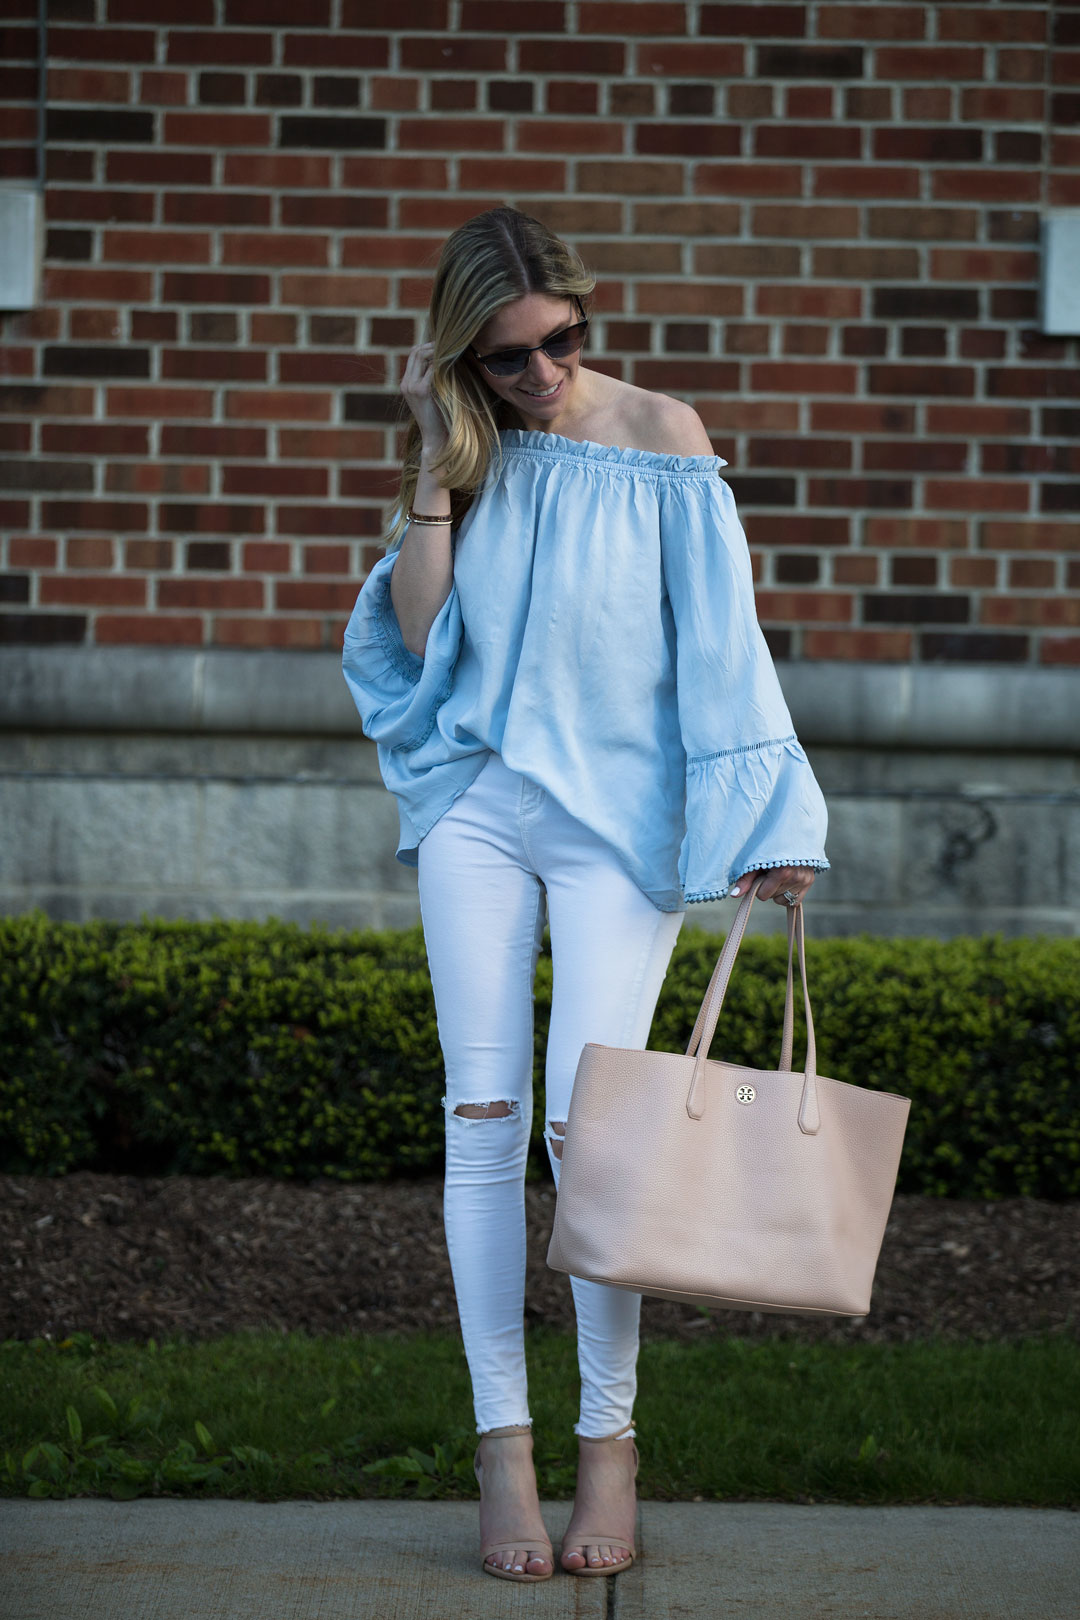 pale blue flowy top perfect for a warm day